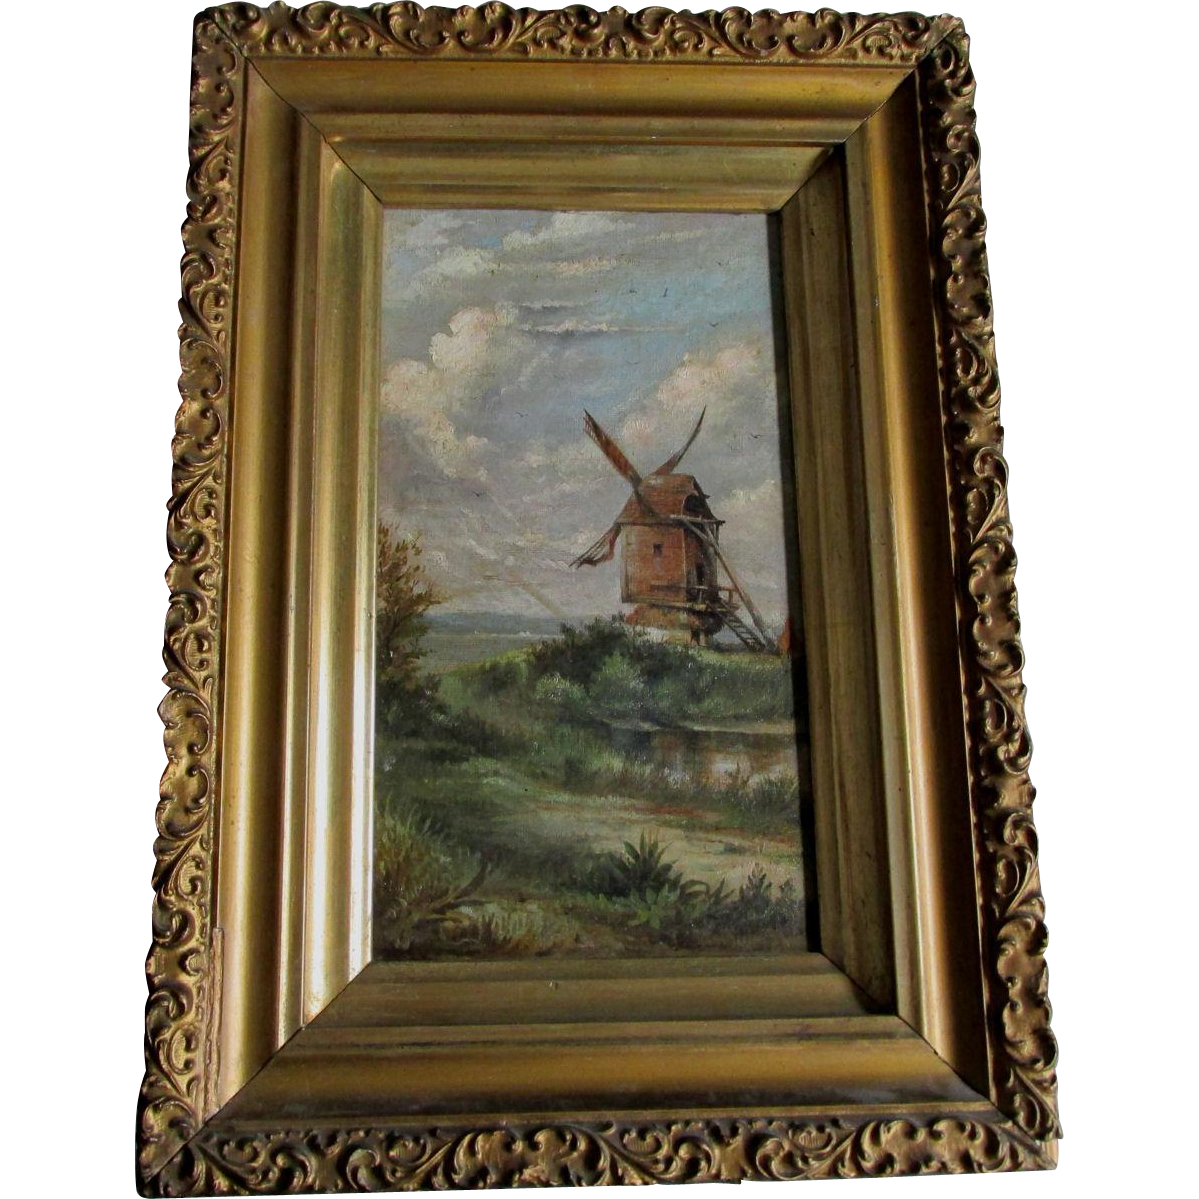 Antique 19thC Oil Painting of a Landscape with Windmill